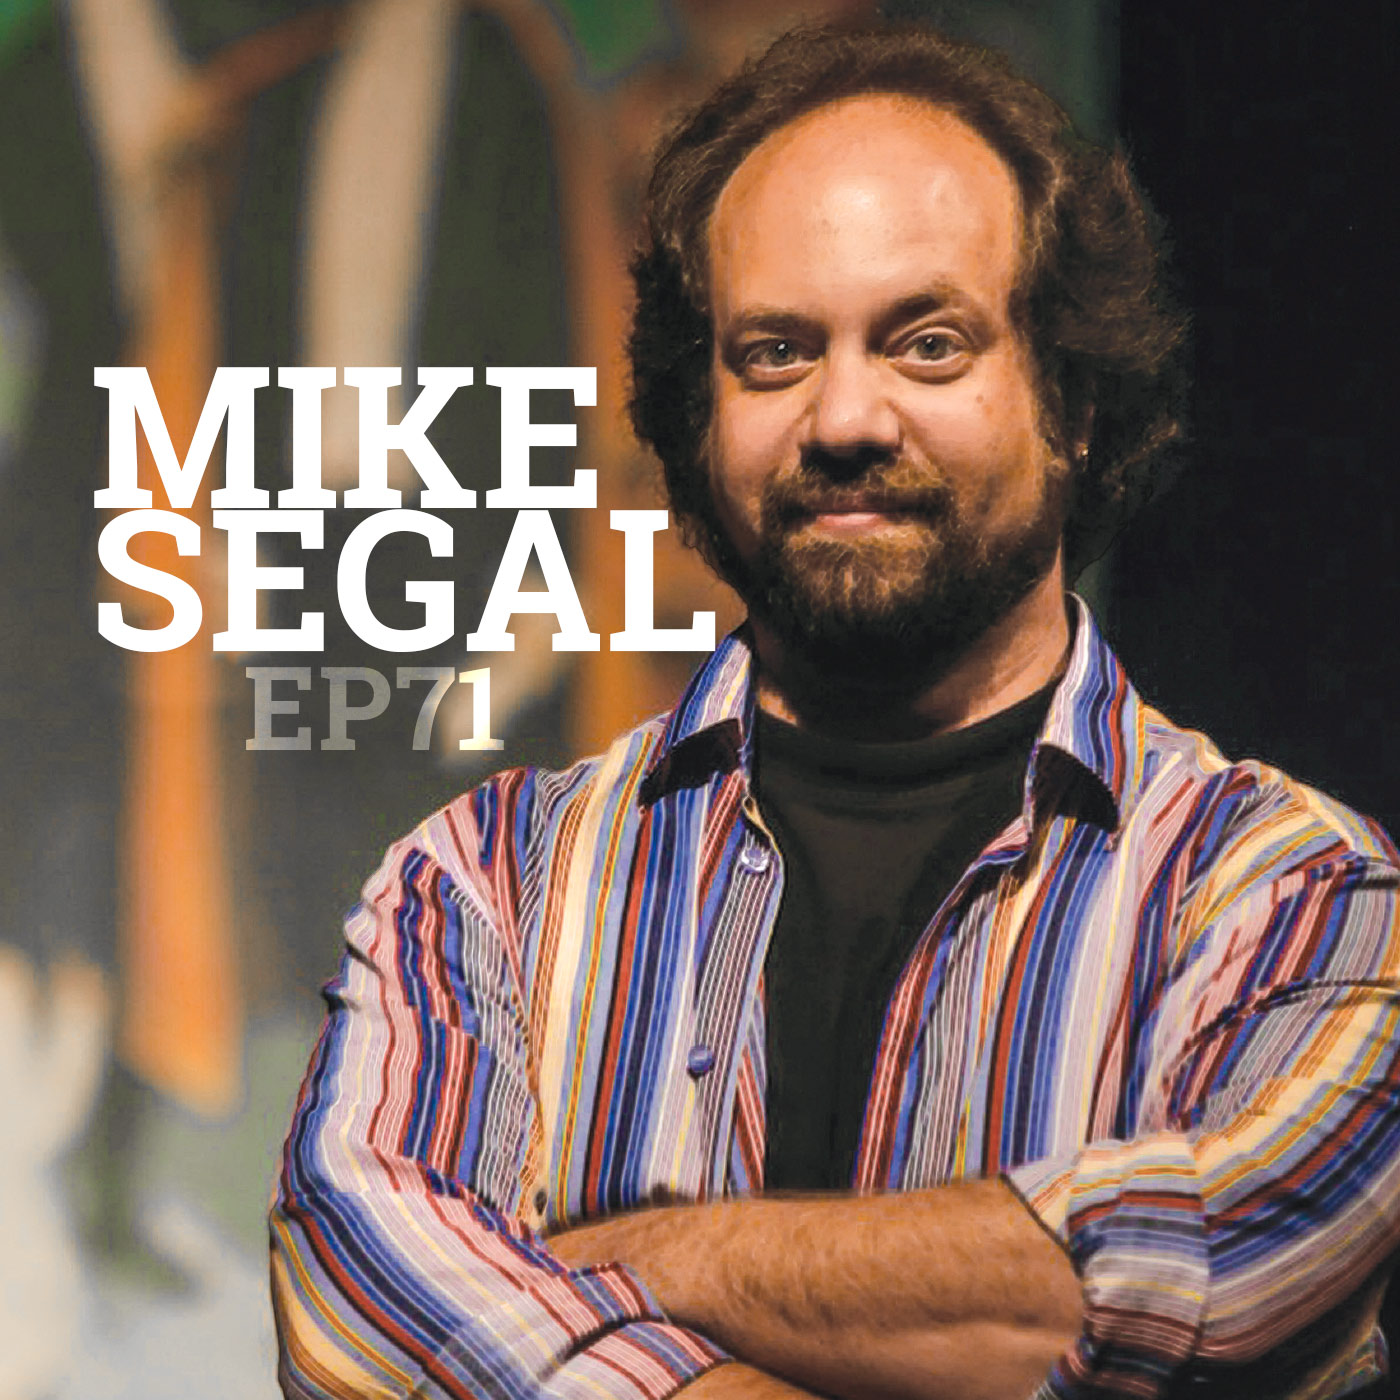 #71 - Mike Segal: 20 Years of Magic Camp. The camp that inspired the movie